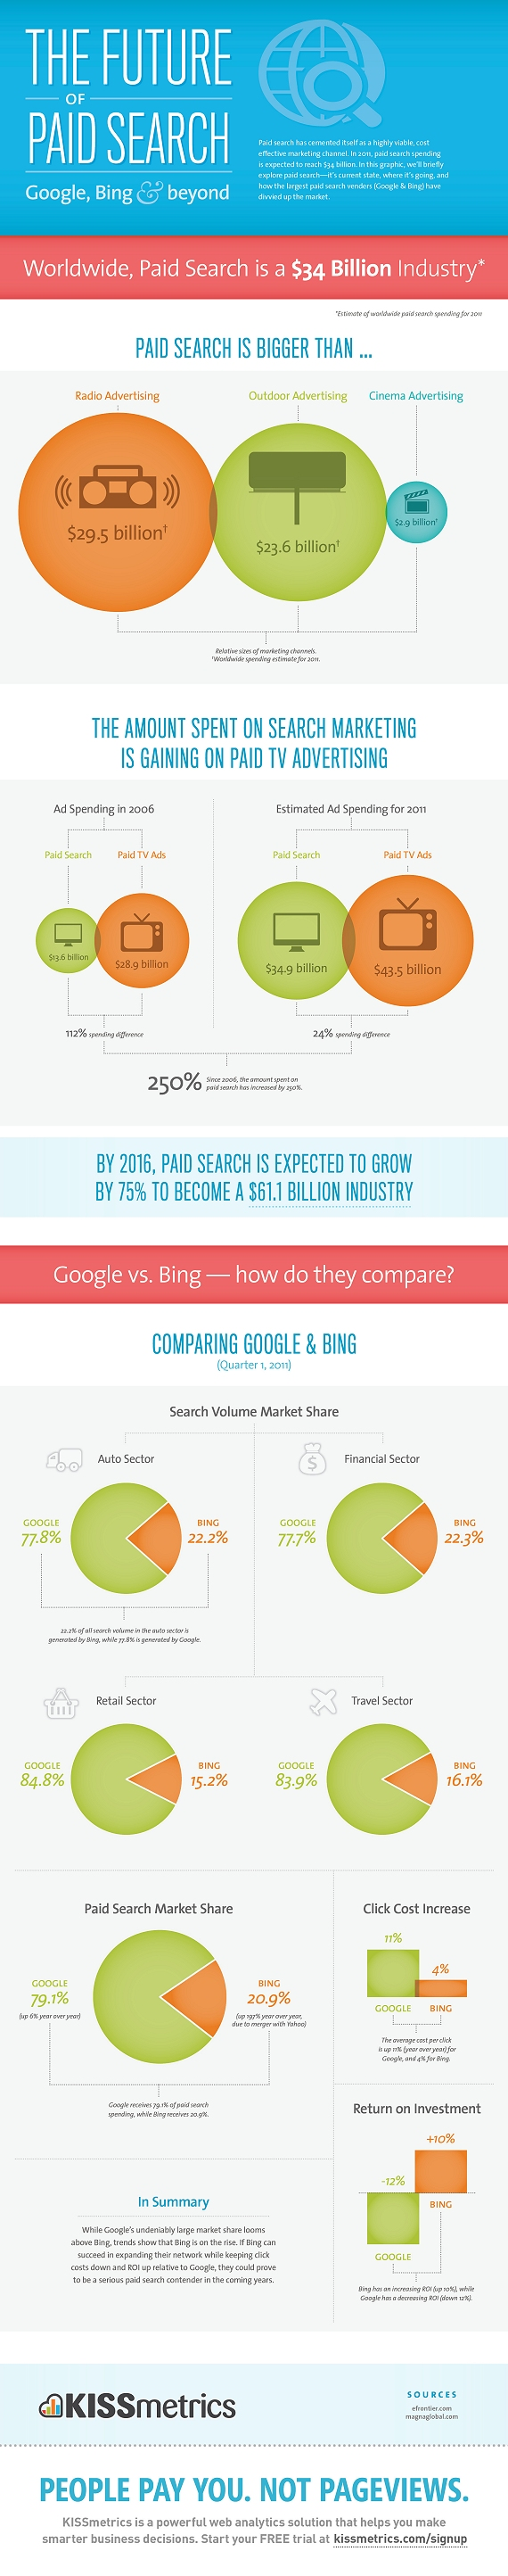 Future of Paid Search resized 600